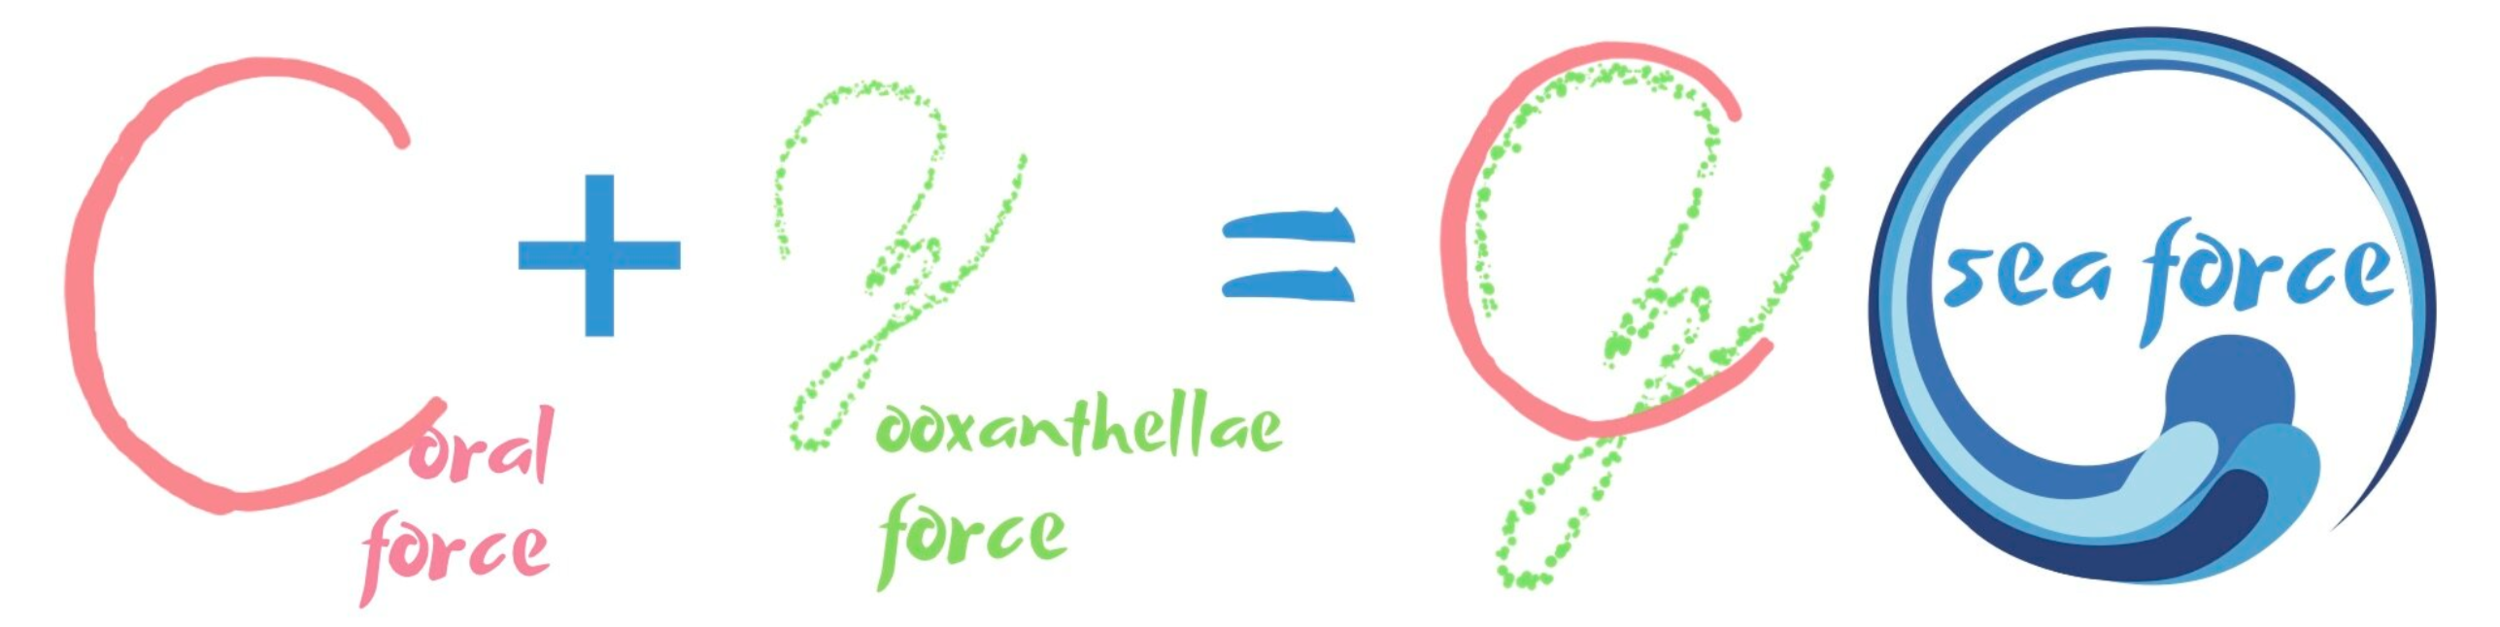 sea-force-coral-force-zooxanthellae-force